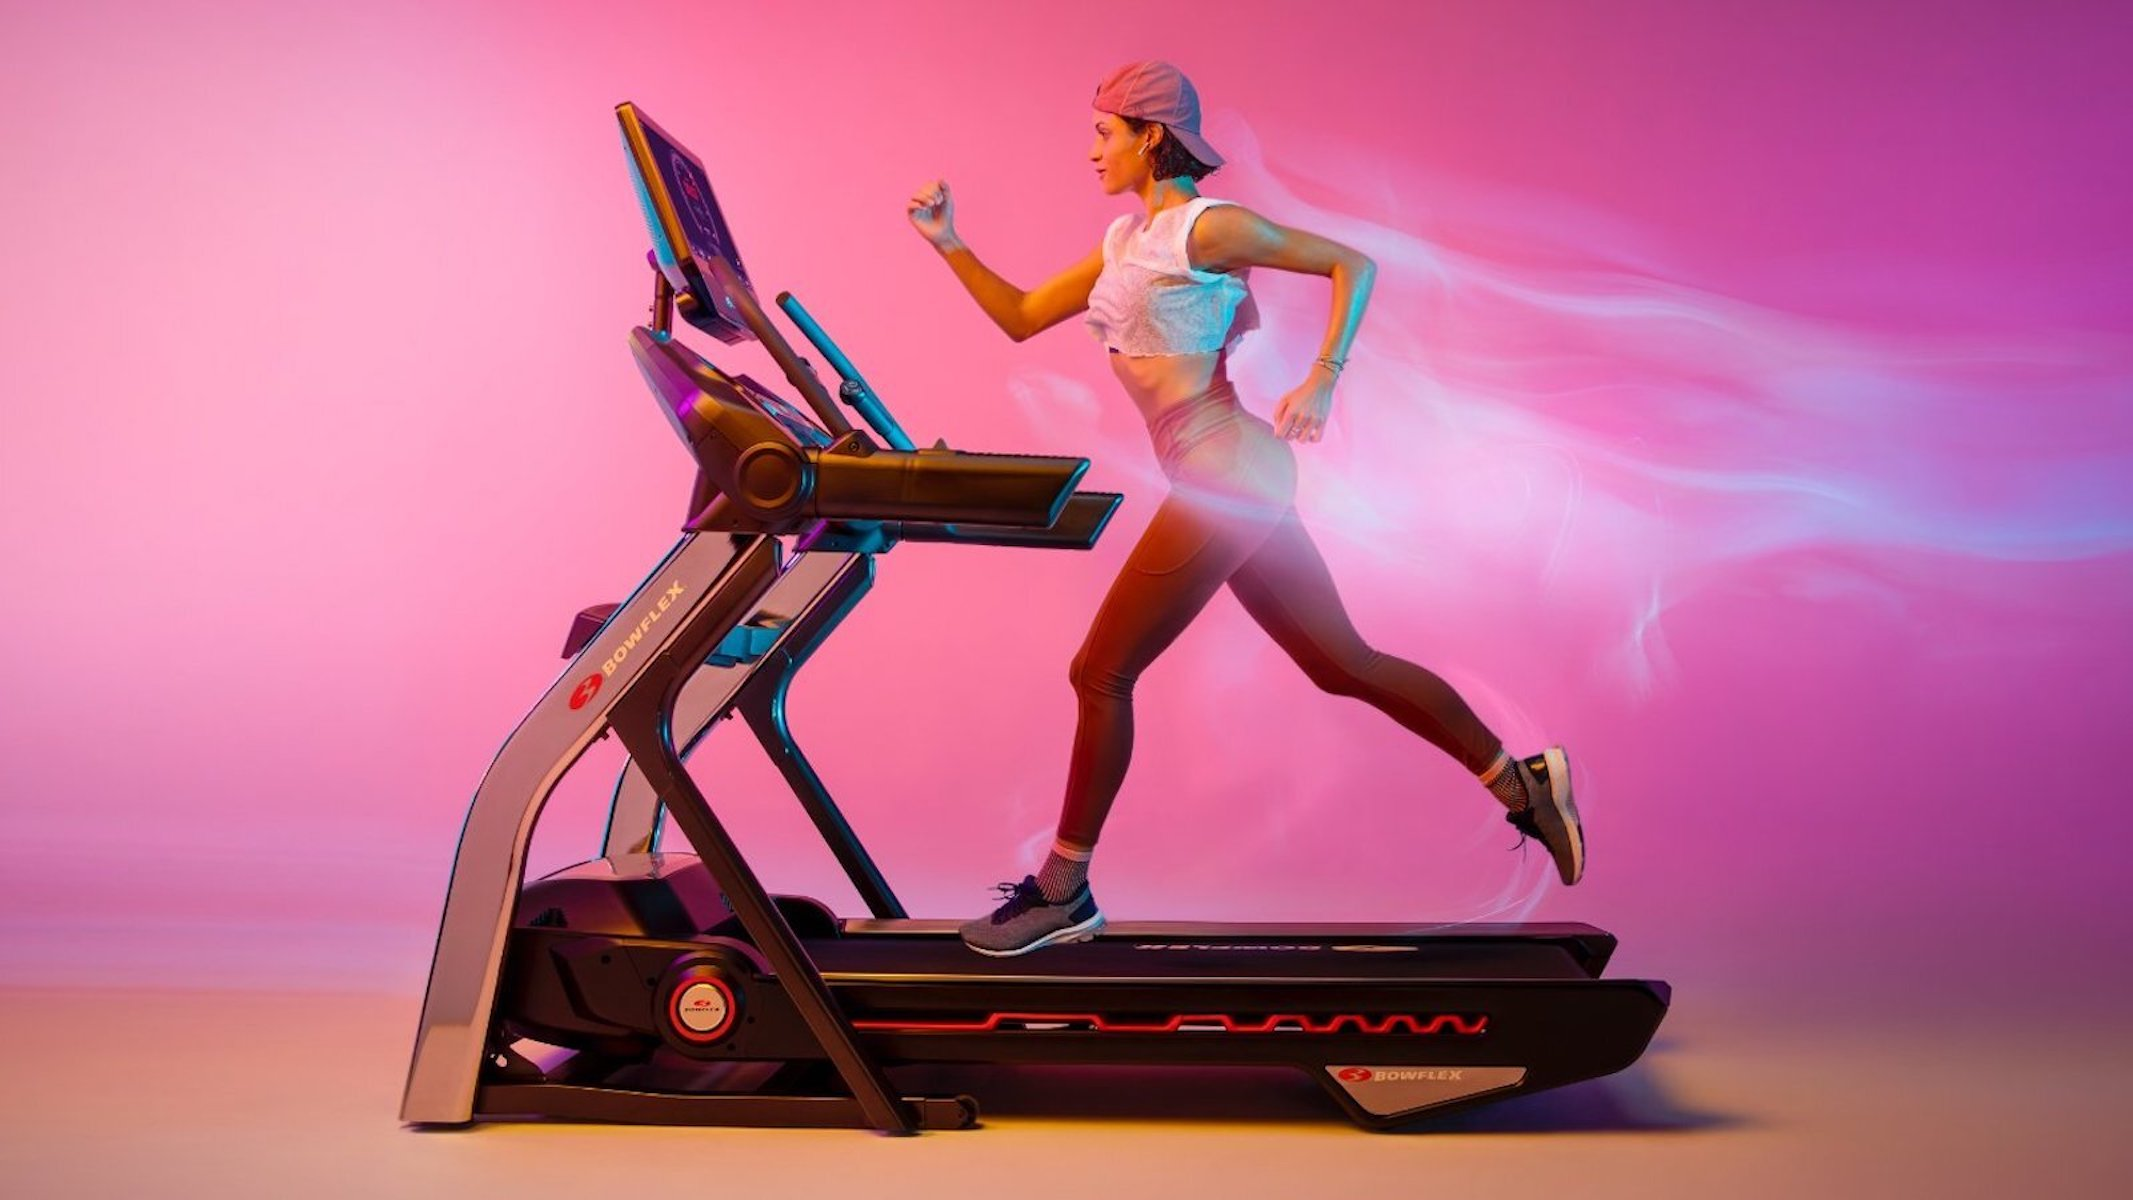 The-8-smart-treadmills-you-should-buy-this-year-featured.jpg